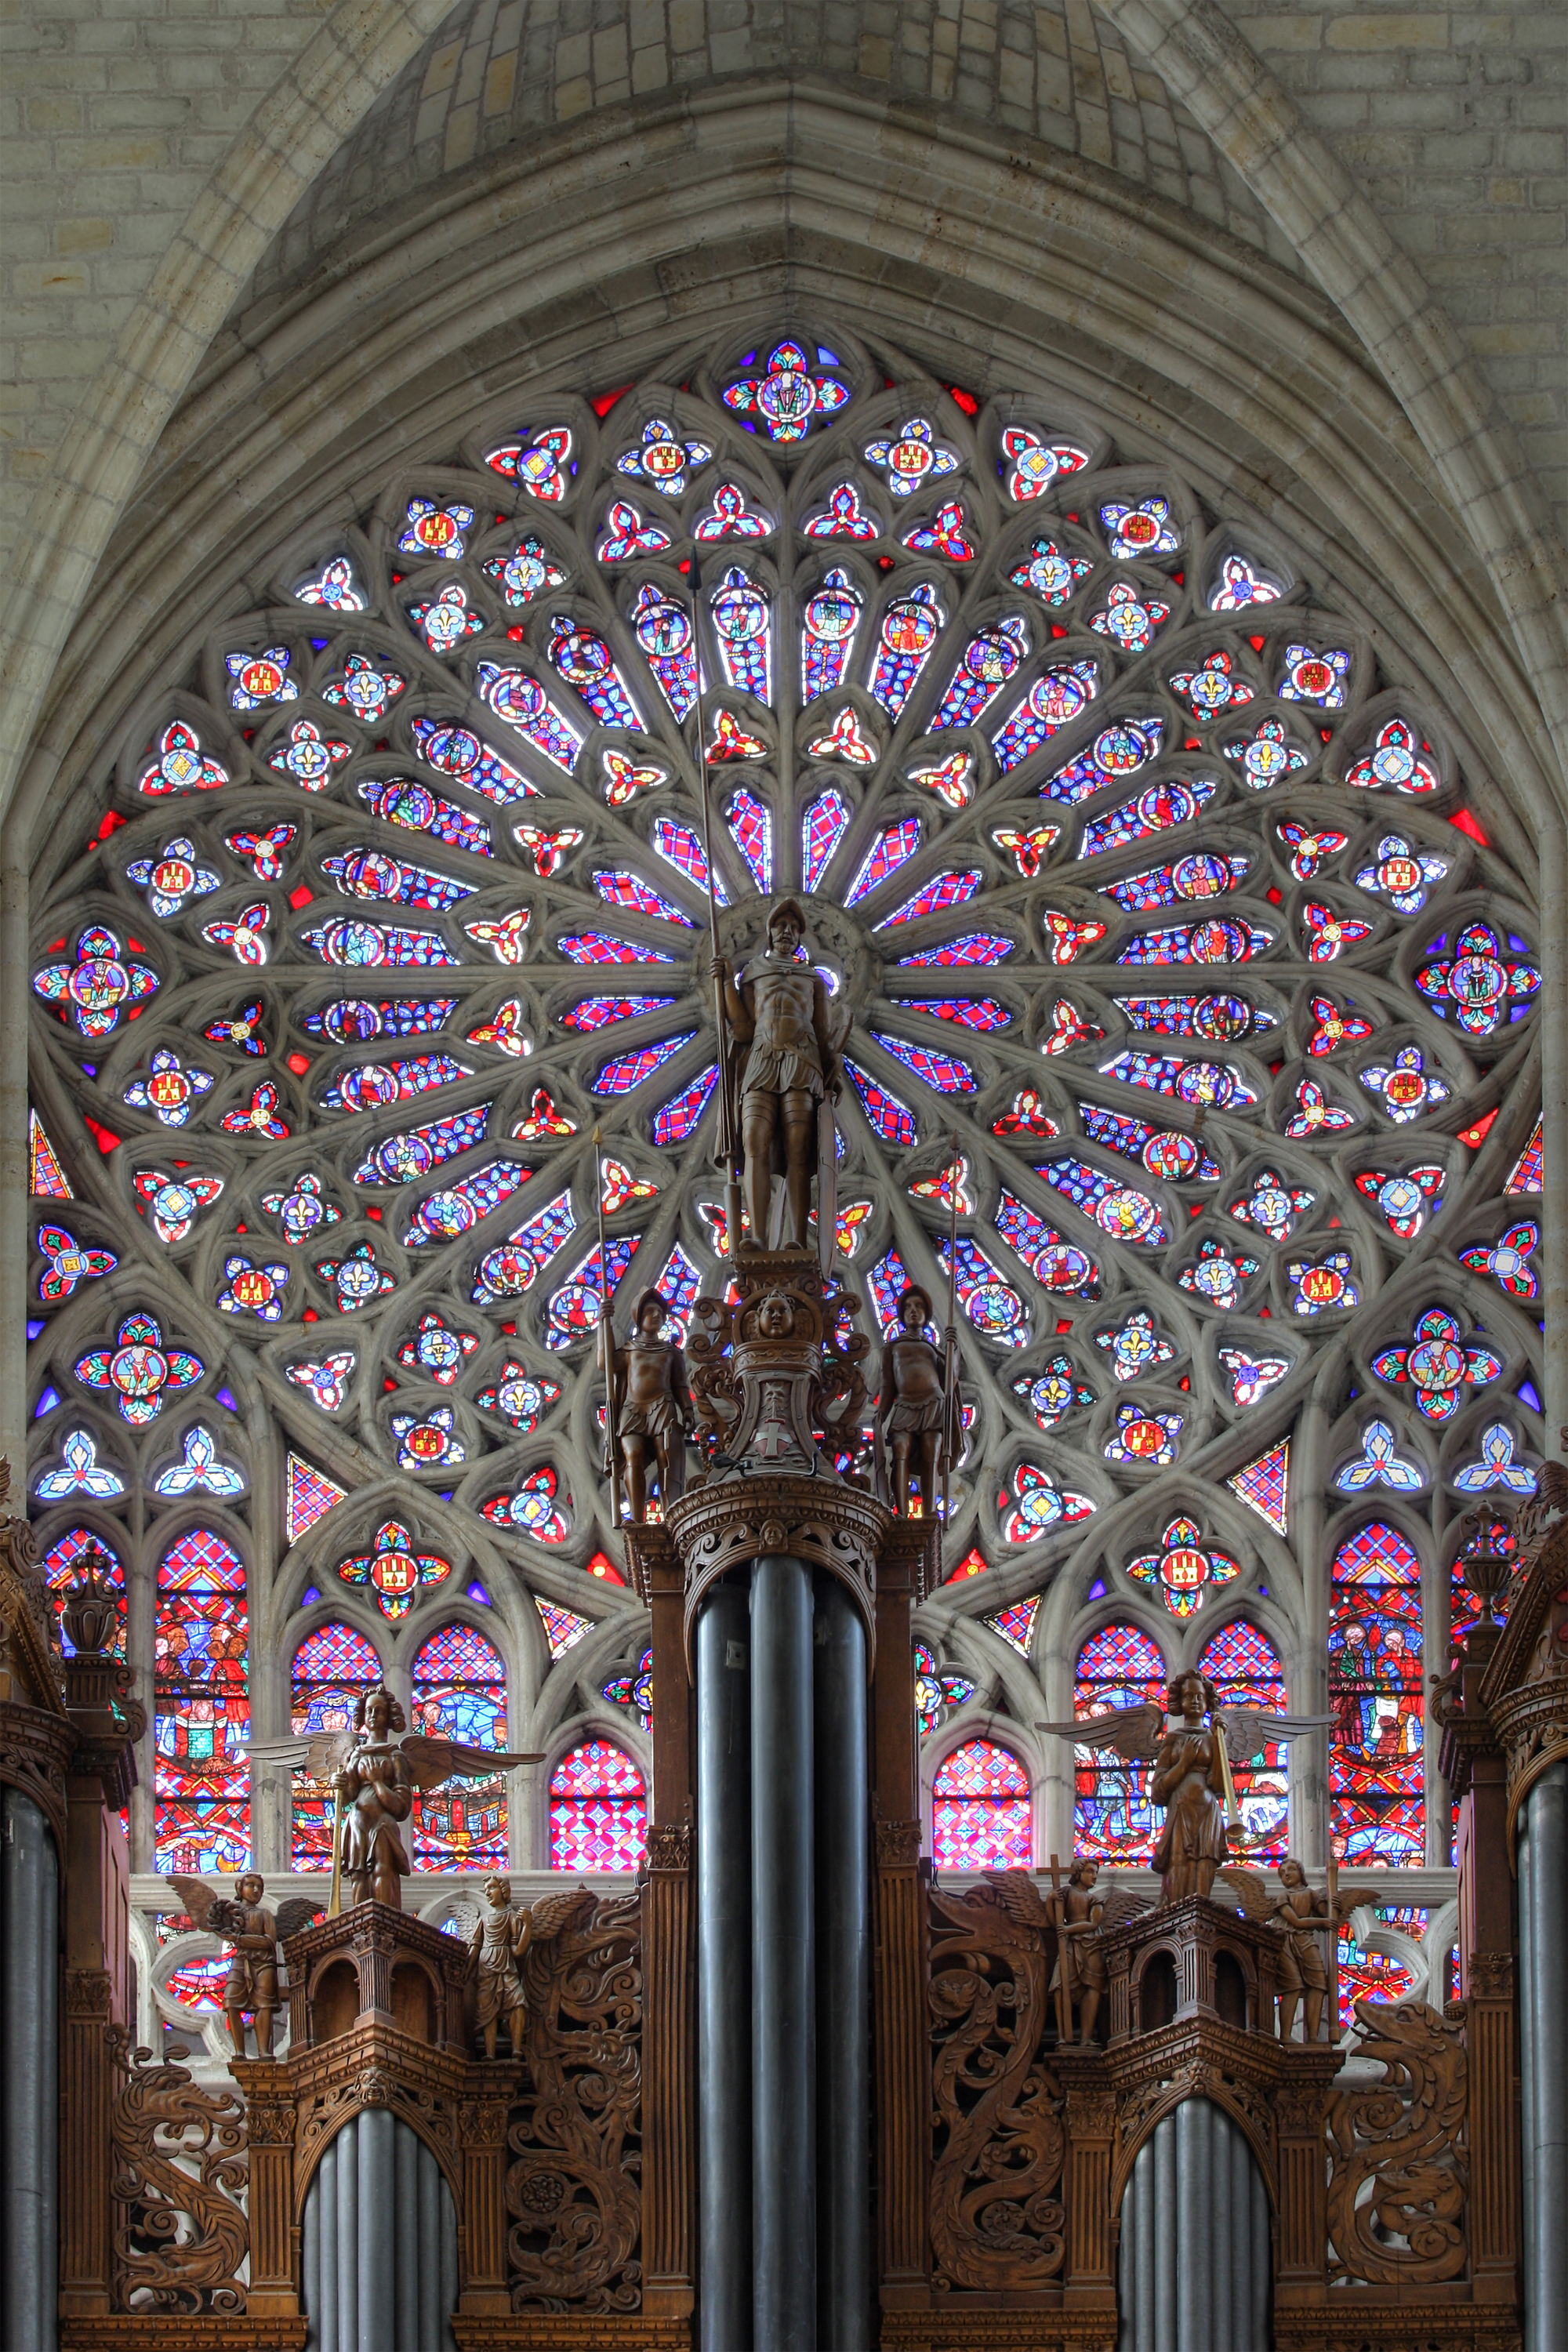 http://upload.wikimedia.org/wikipedia/commons/2/2f/Cath%C3%A9drale_de_Tours_-_rosace_et_orgue.jpg